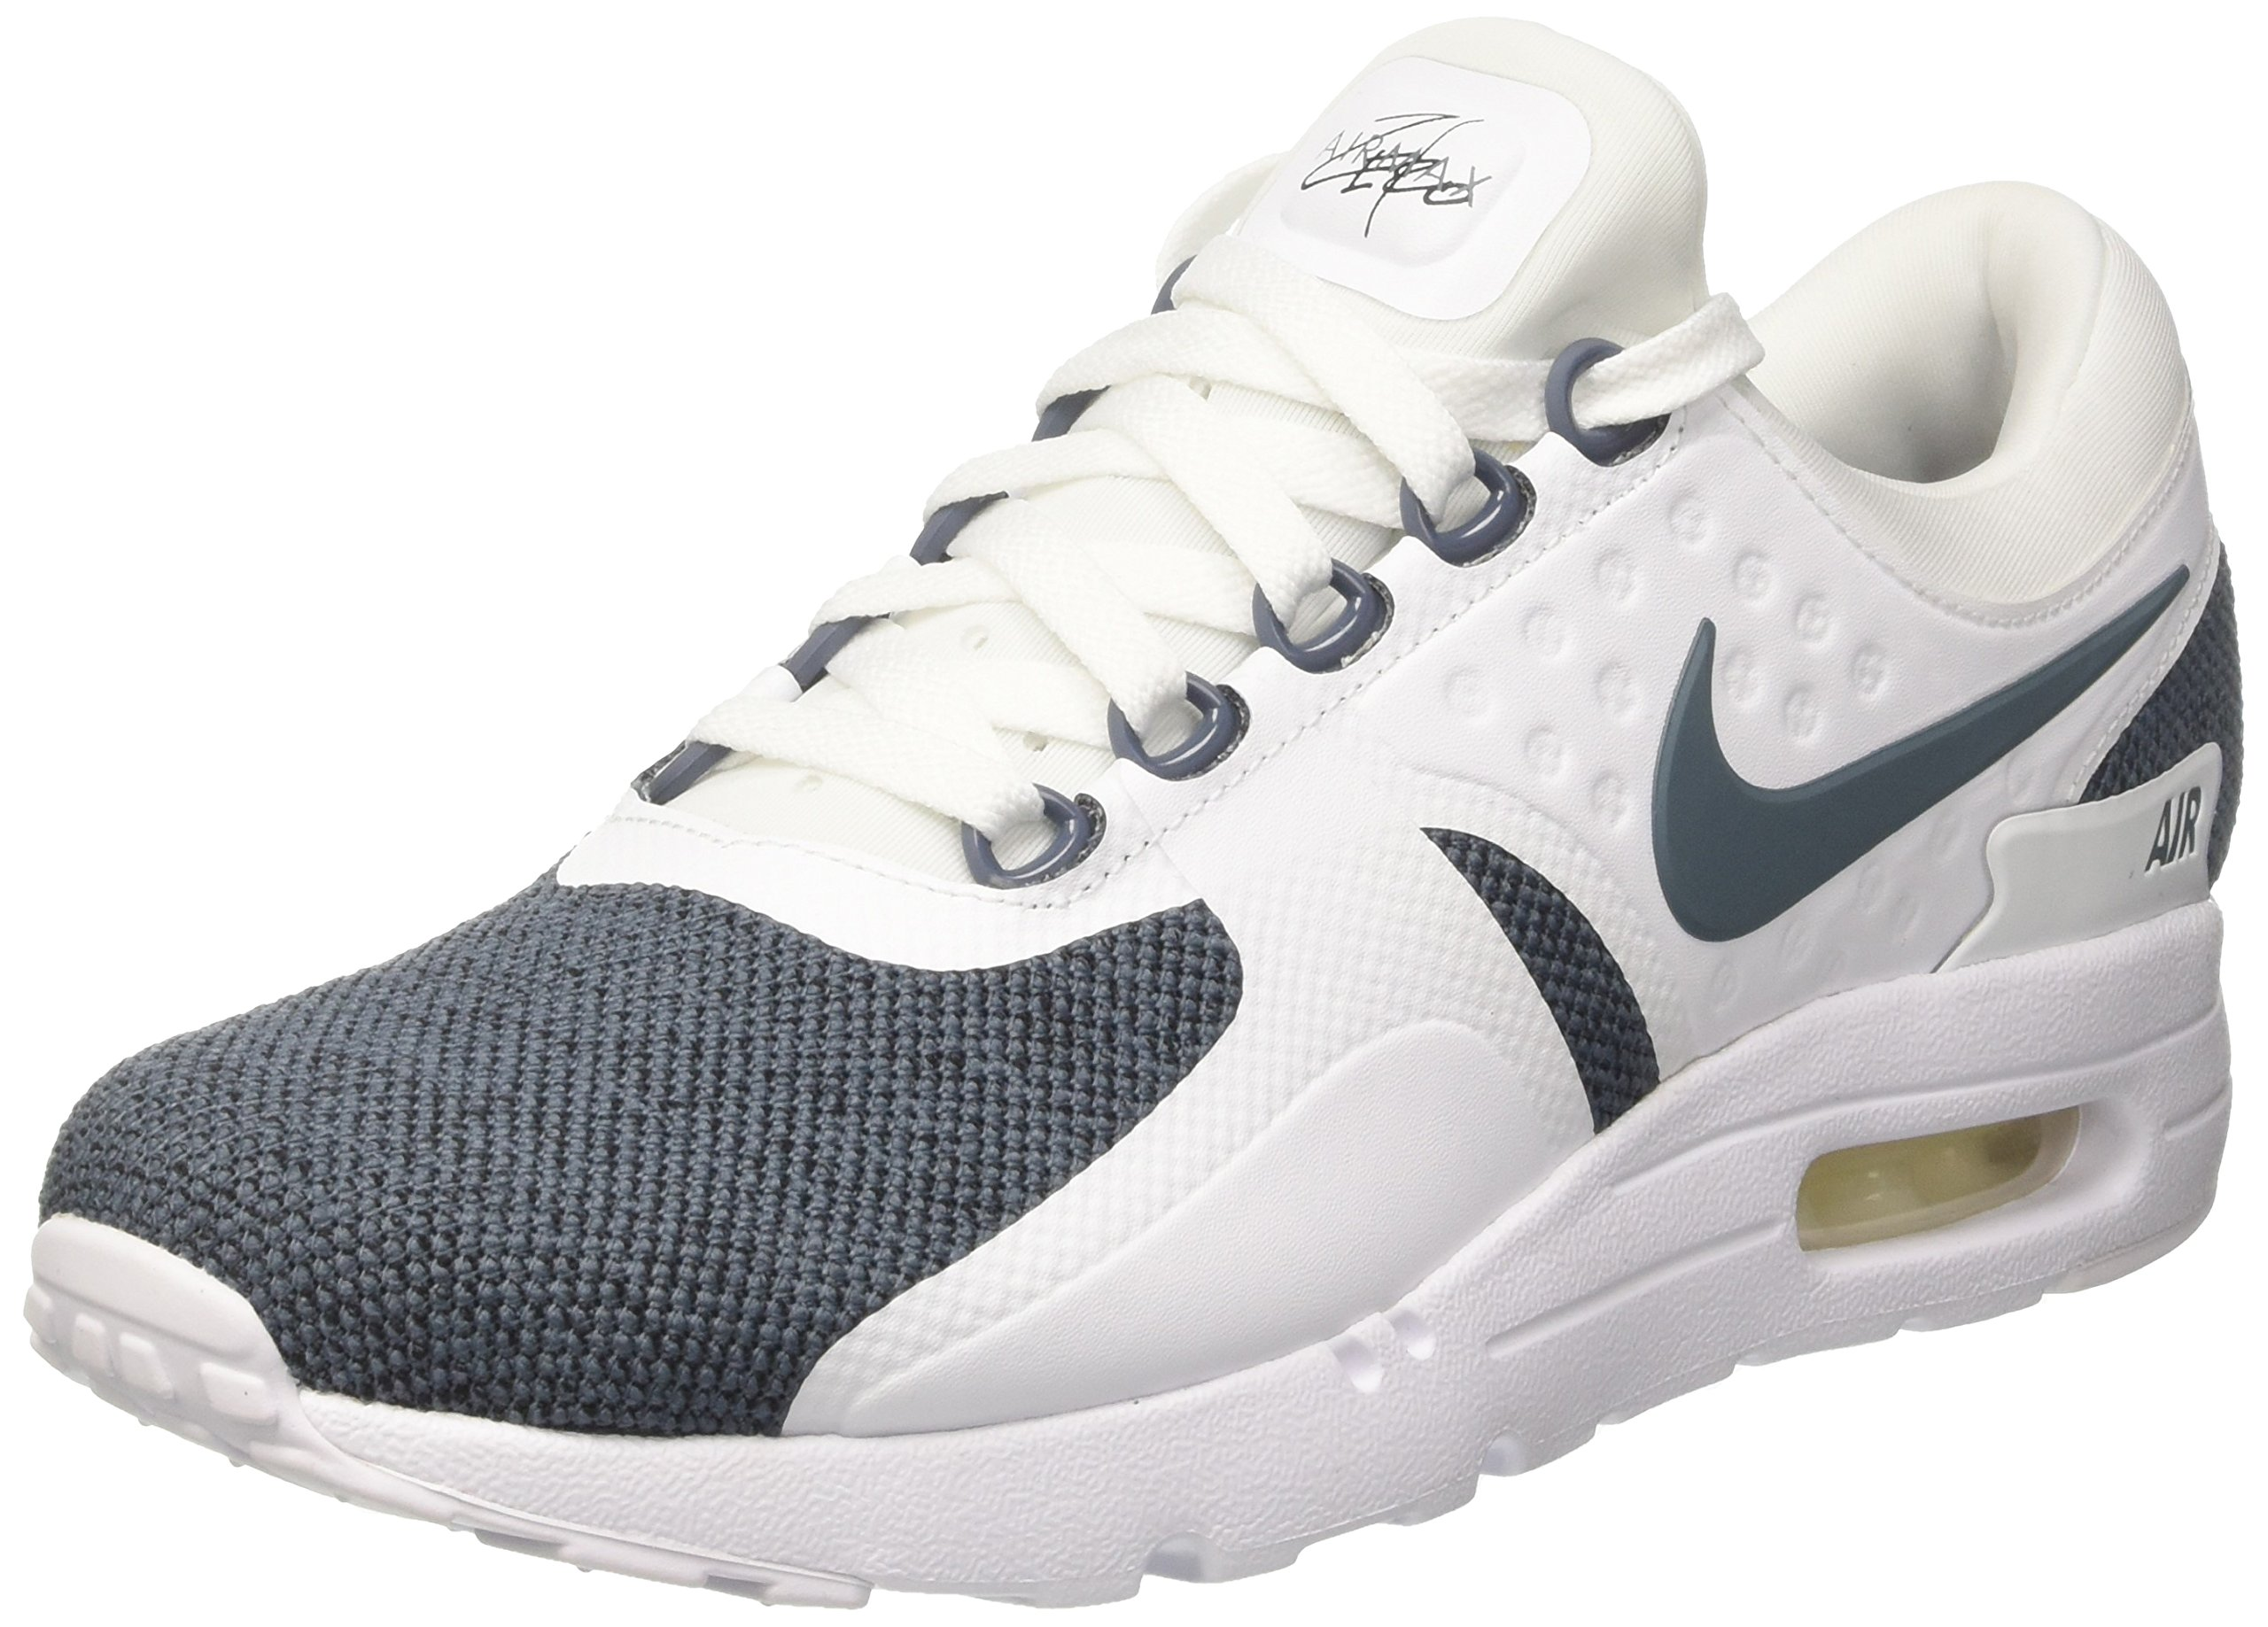 outlet store ab0d6 20d22 Galleon - Nike Air Max Zero SE Mens Running Trainers 918232 Sneakers Shoes  (UK 8.5 US 9.5 EU 43, White Blue Black 100)